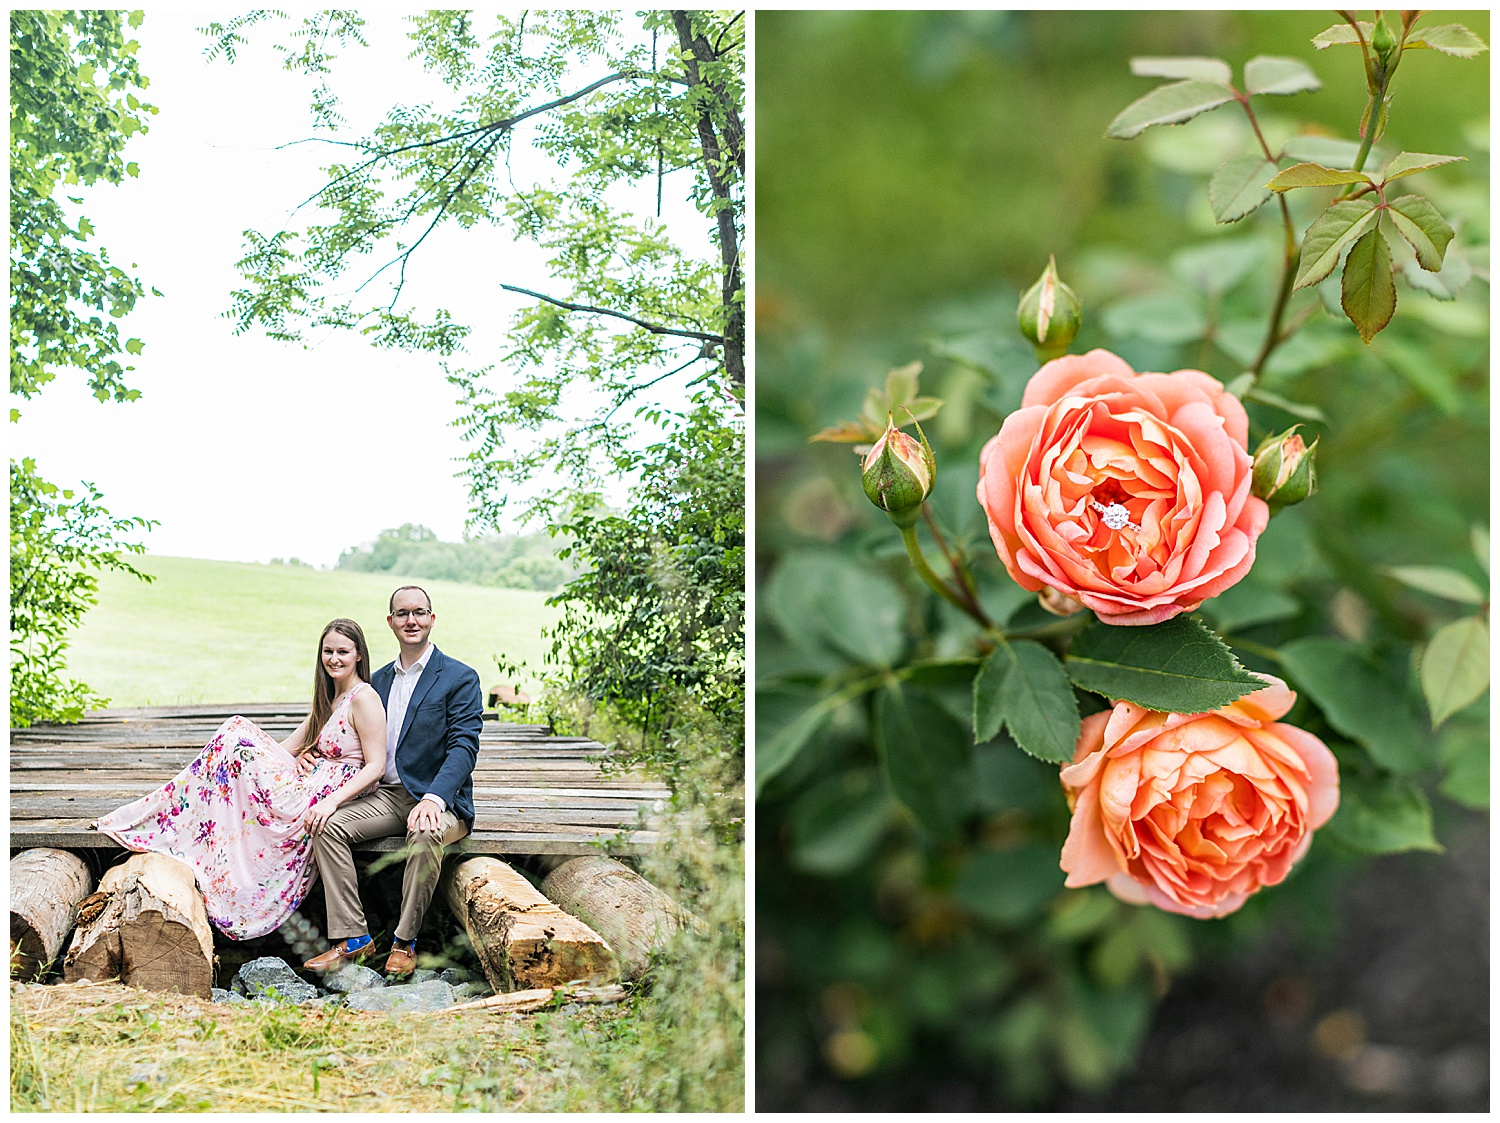 Abby Ryan Private Farm Engagement Session Living Radiant Photography photos_0034.jpg